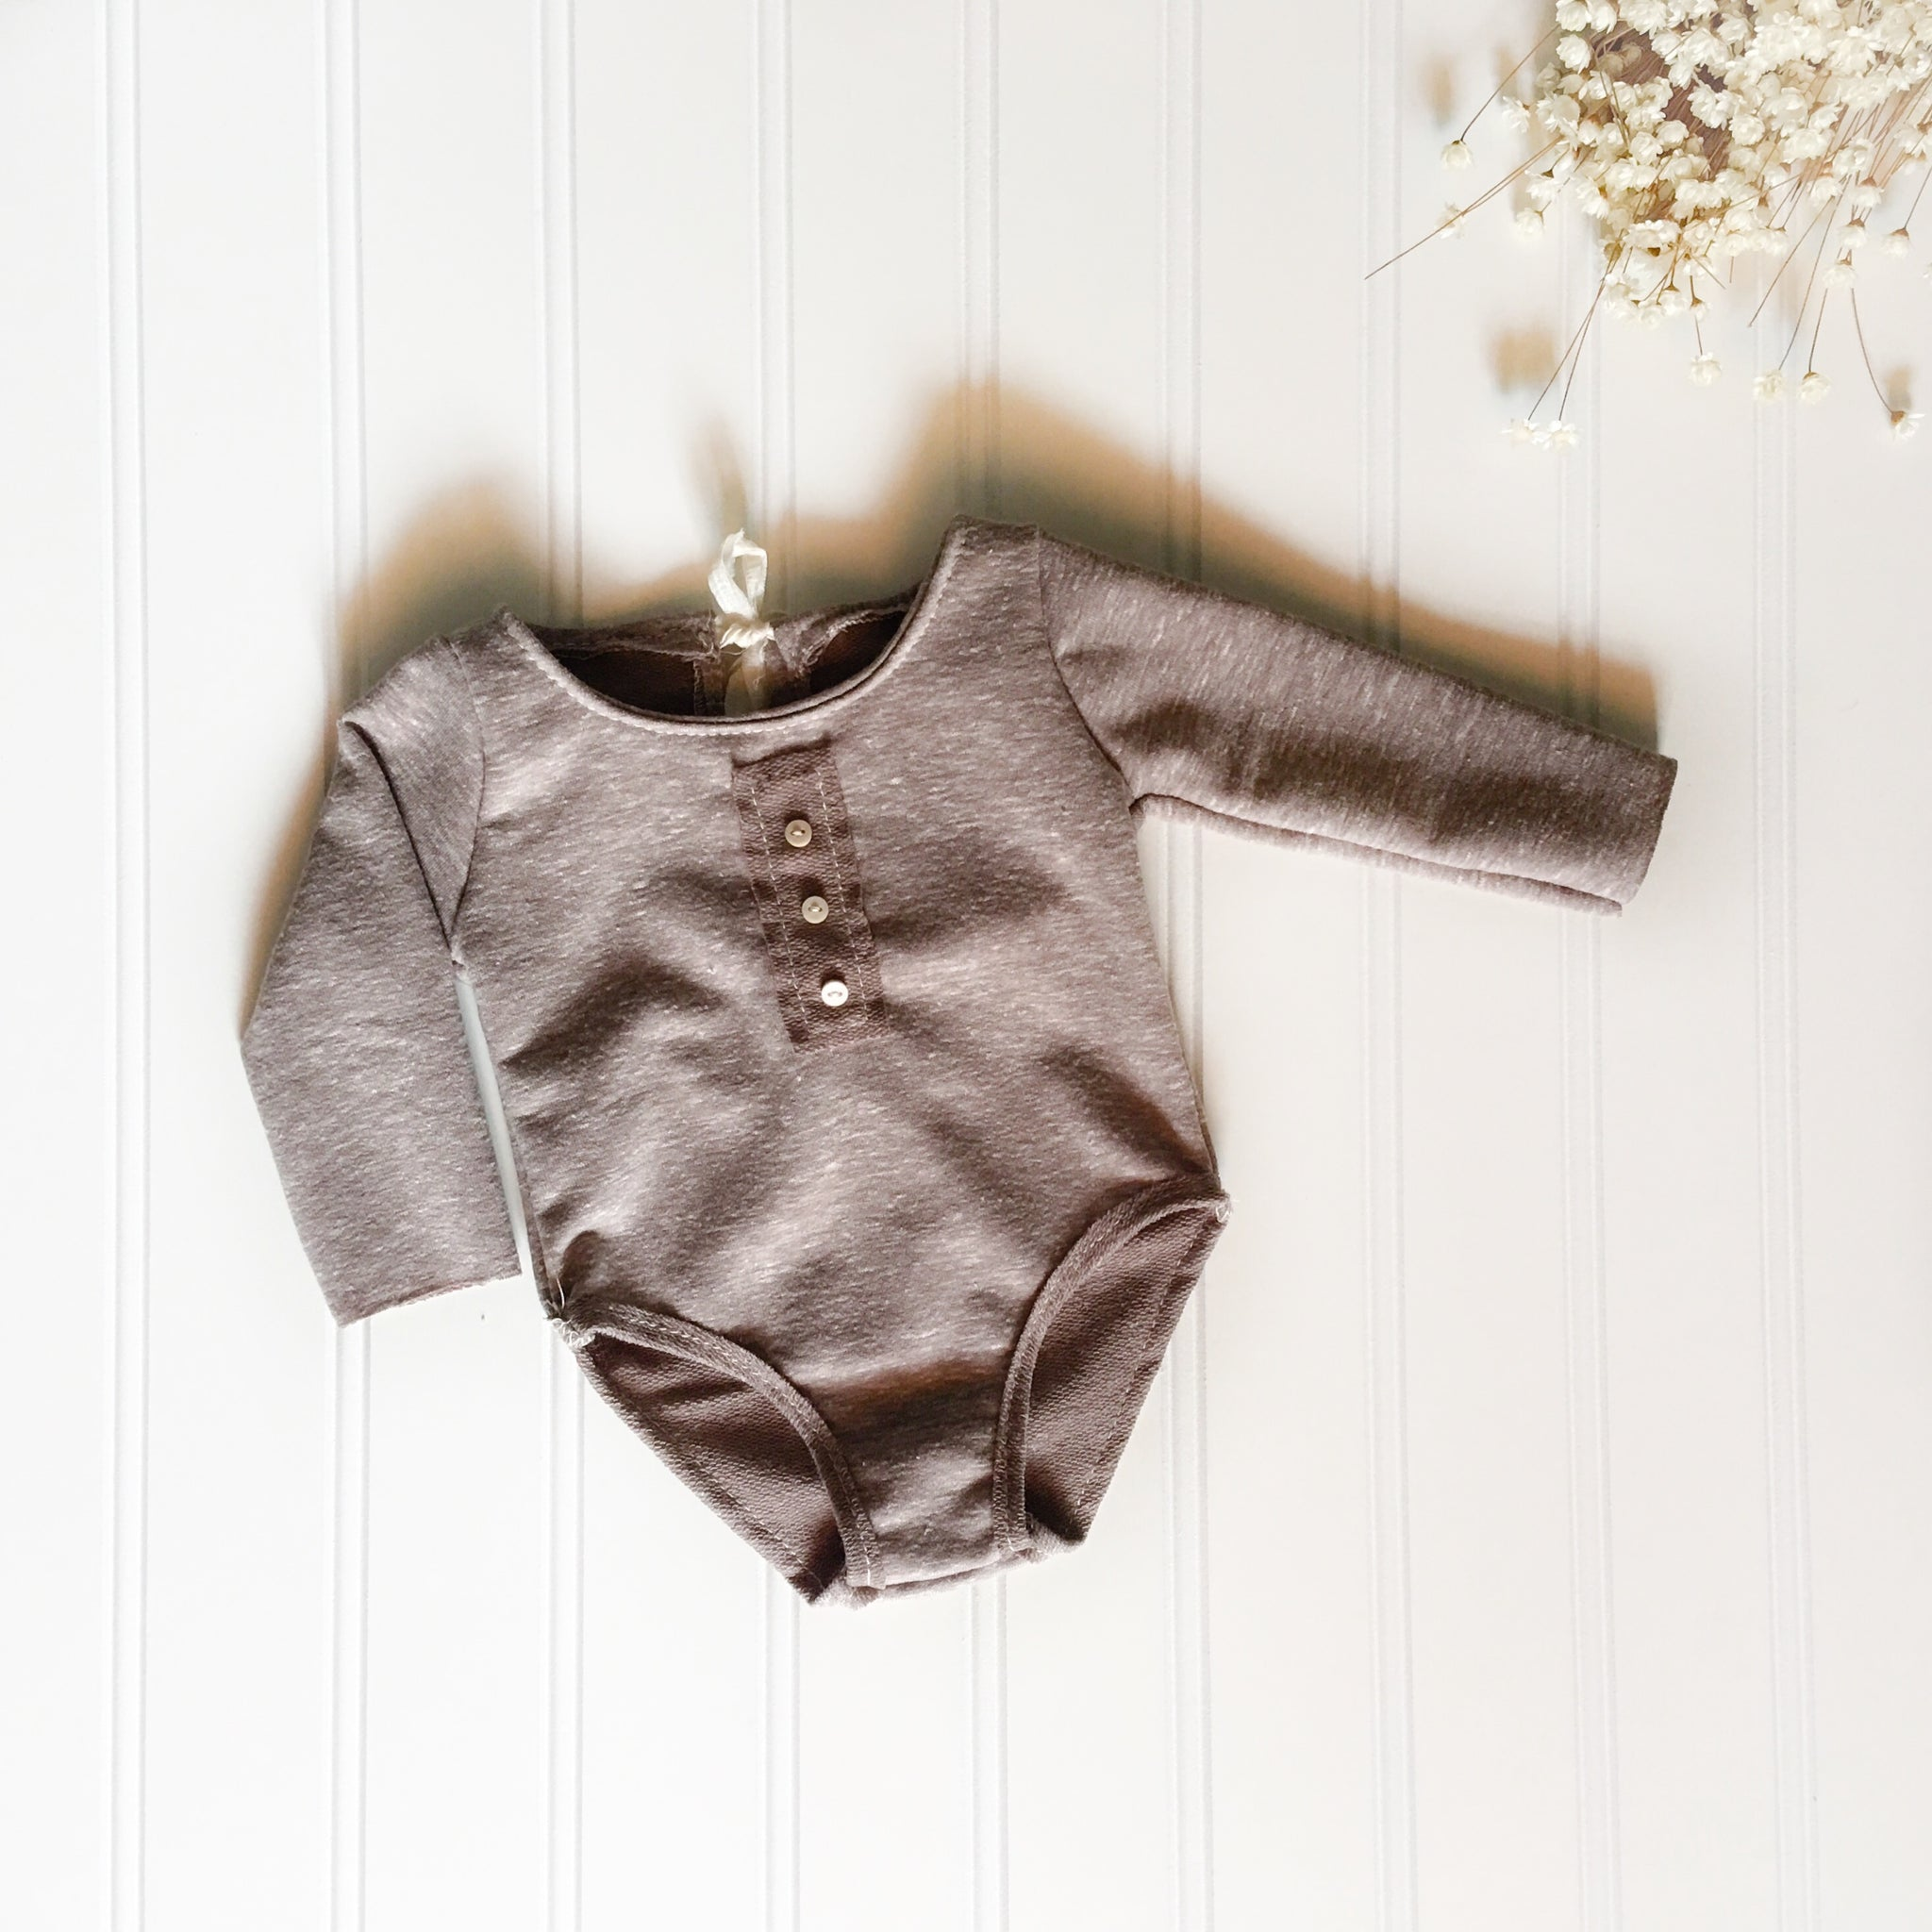 Newborn Tan Button Romper